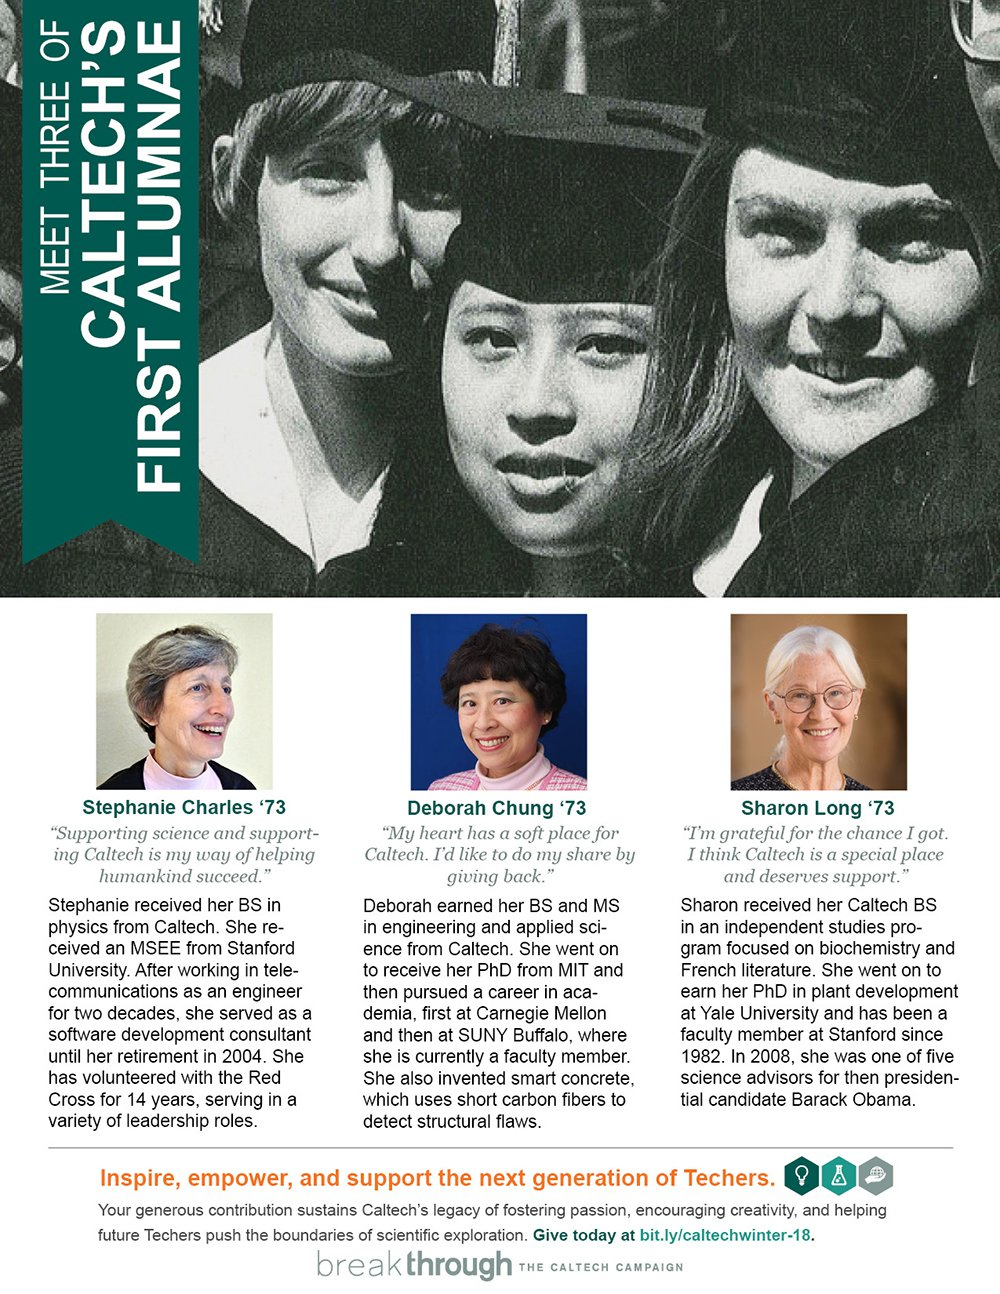 Three of Caltech's First Alumnae